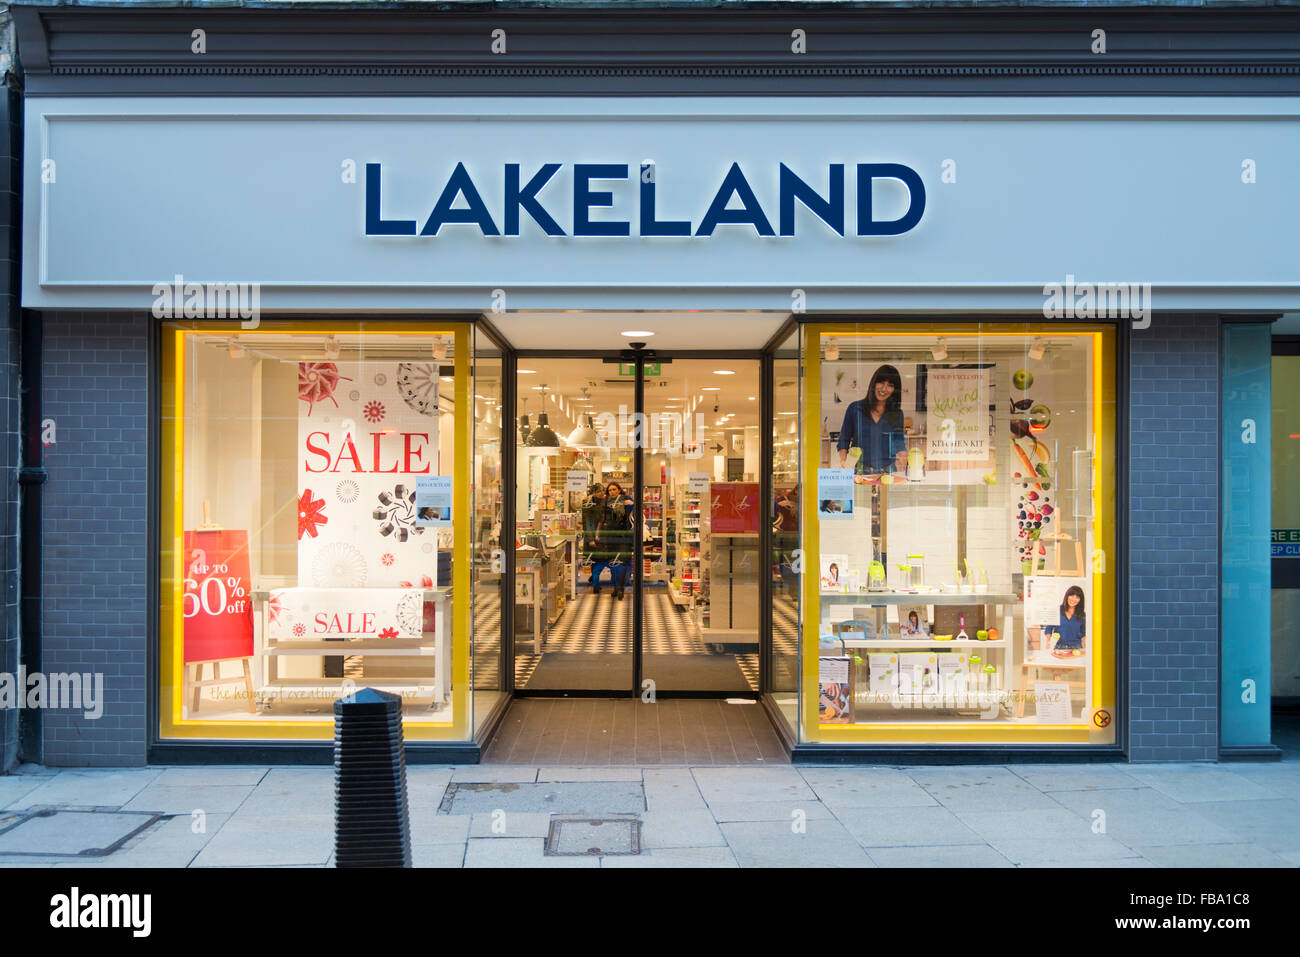 The Lakeland kitchen equipment shop St Andrews Street Cambridge UK - Stock Image